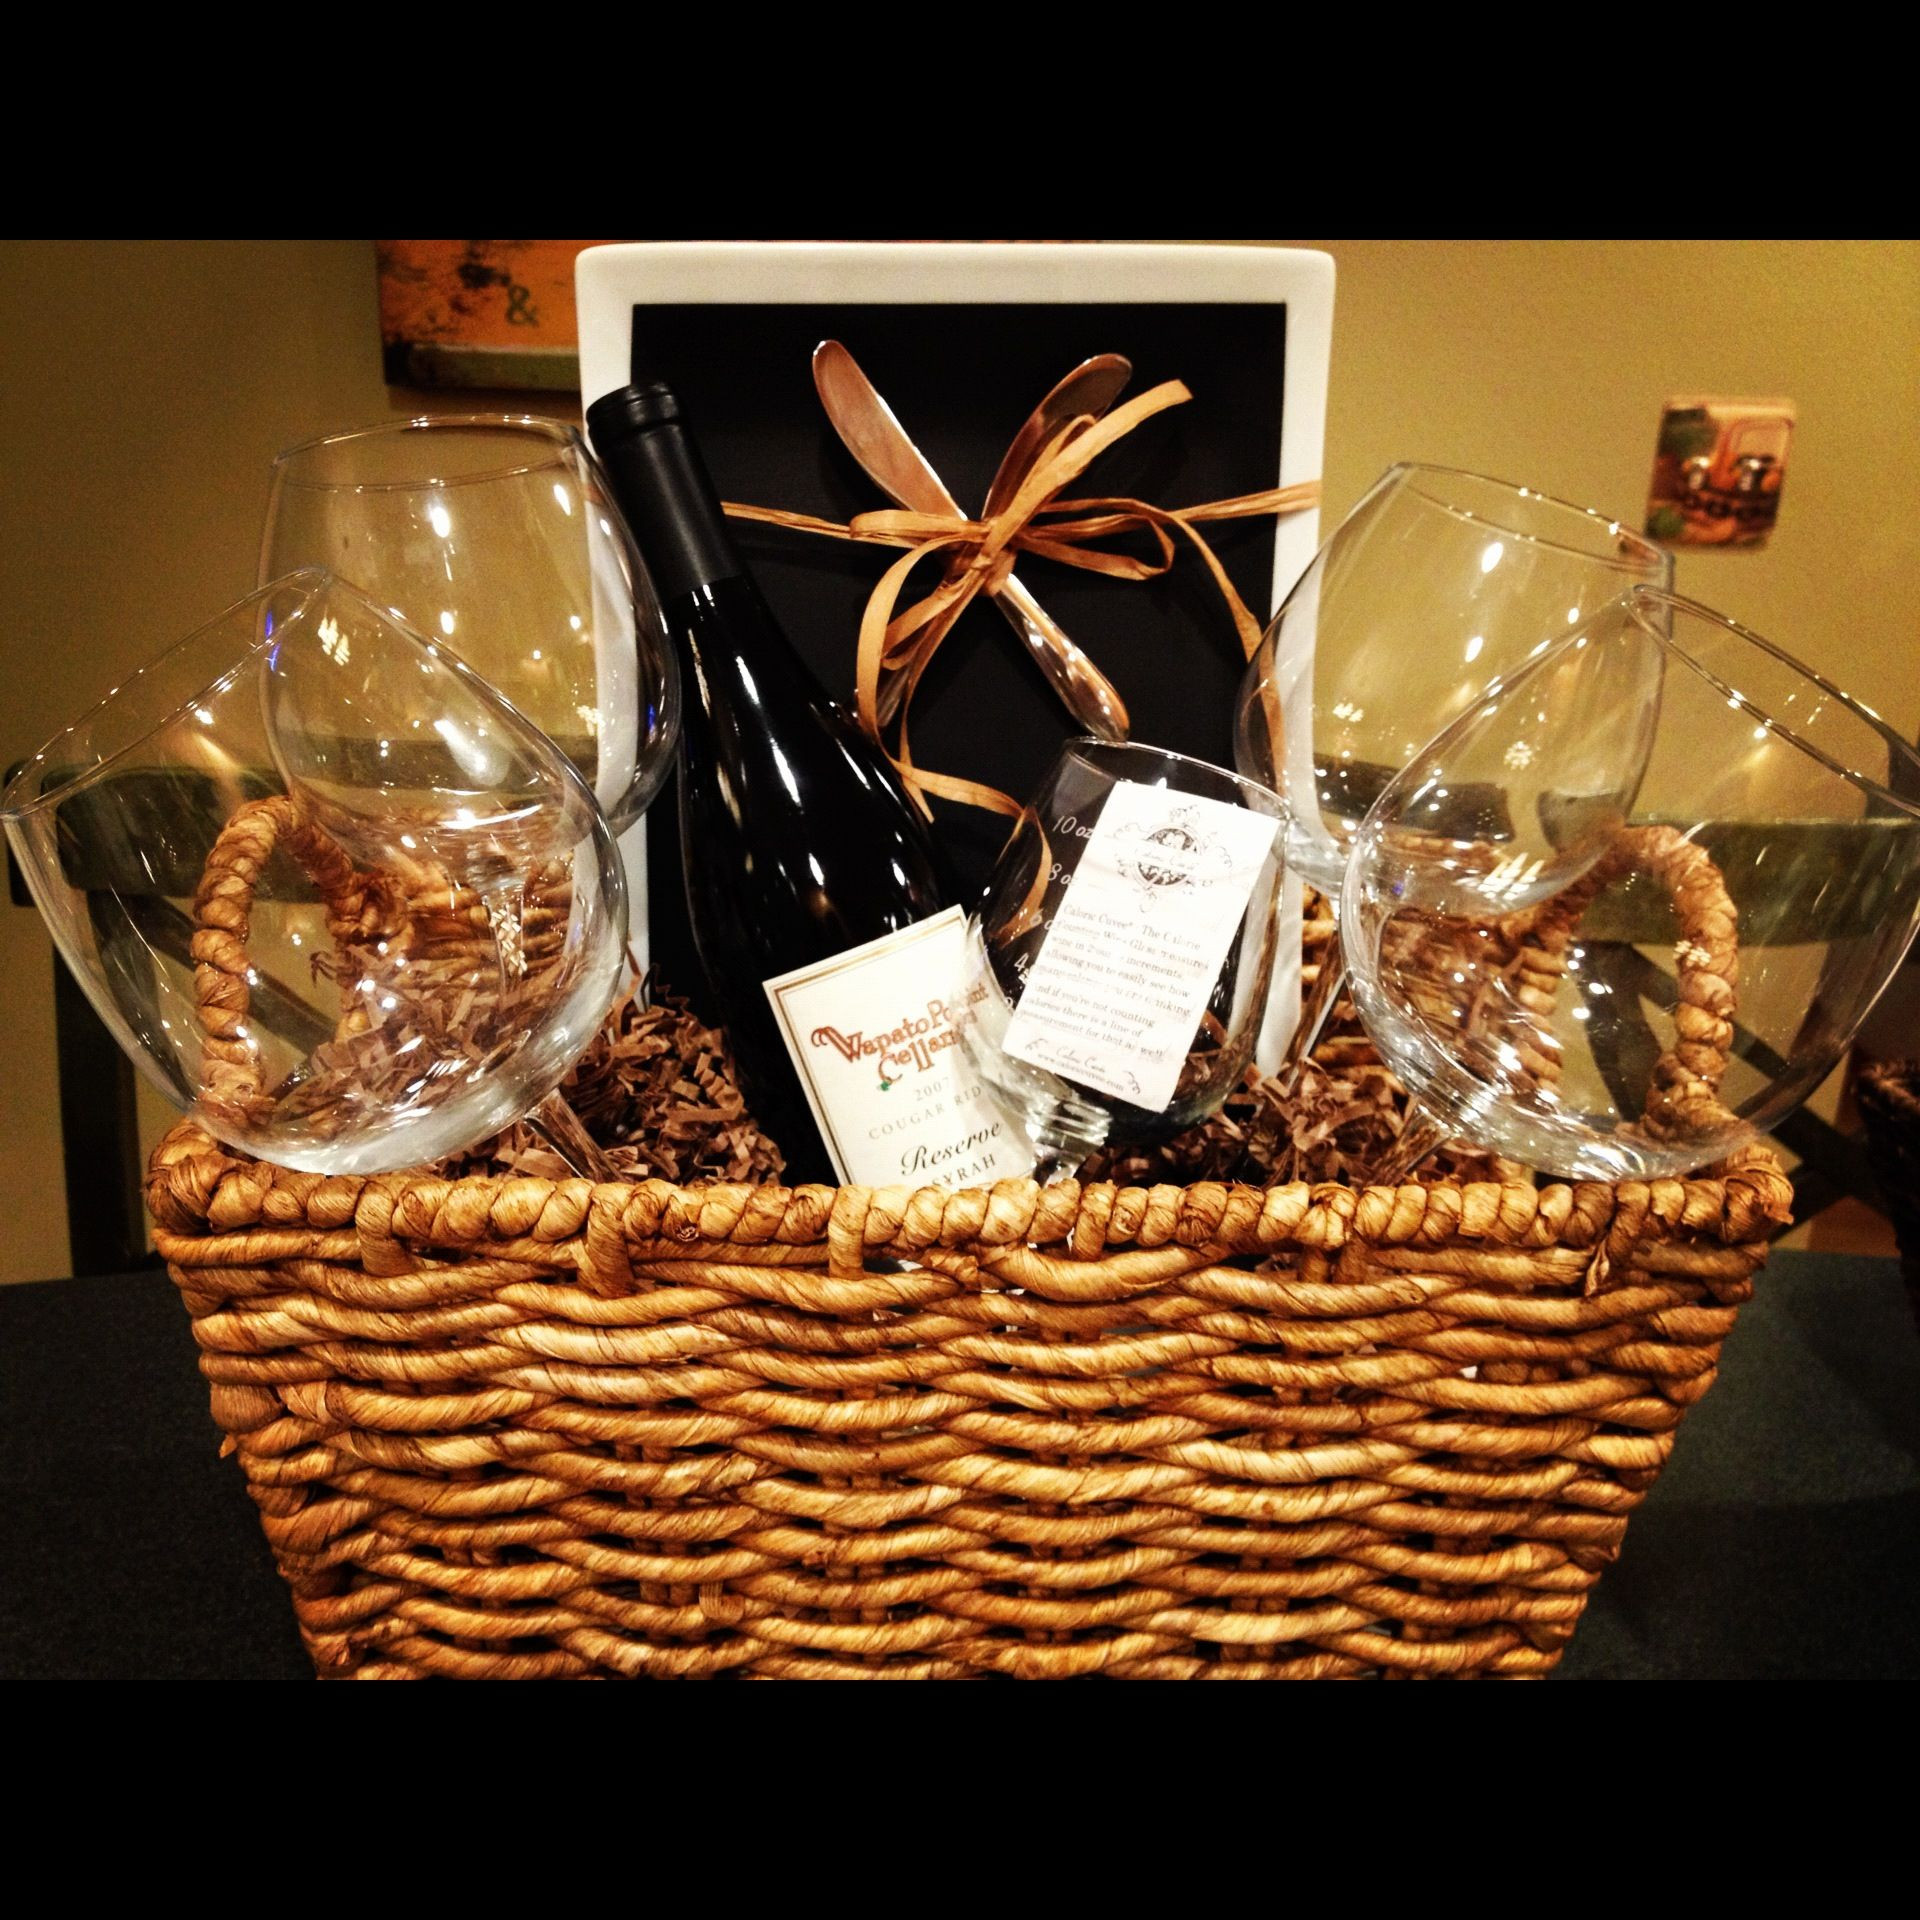 Best ideas about Wine Basket Gift Ideas . Save or Pin DIY wine t basket for shower throwers 1 or 2 bottles Now.